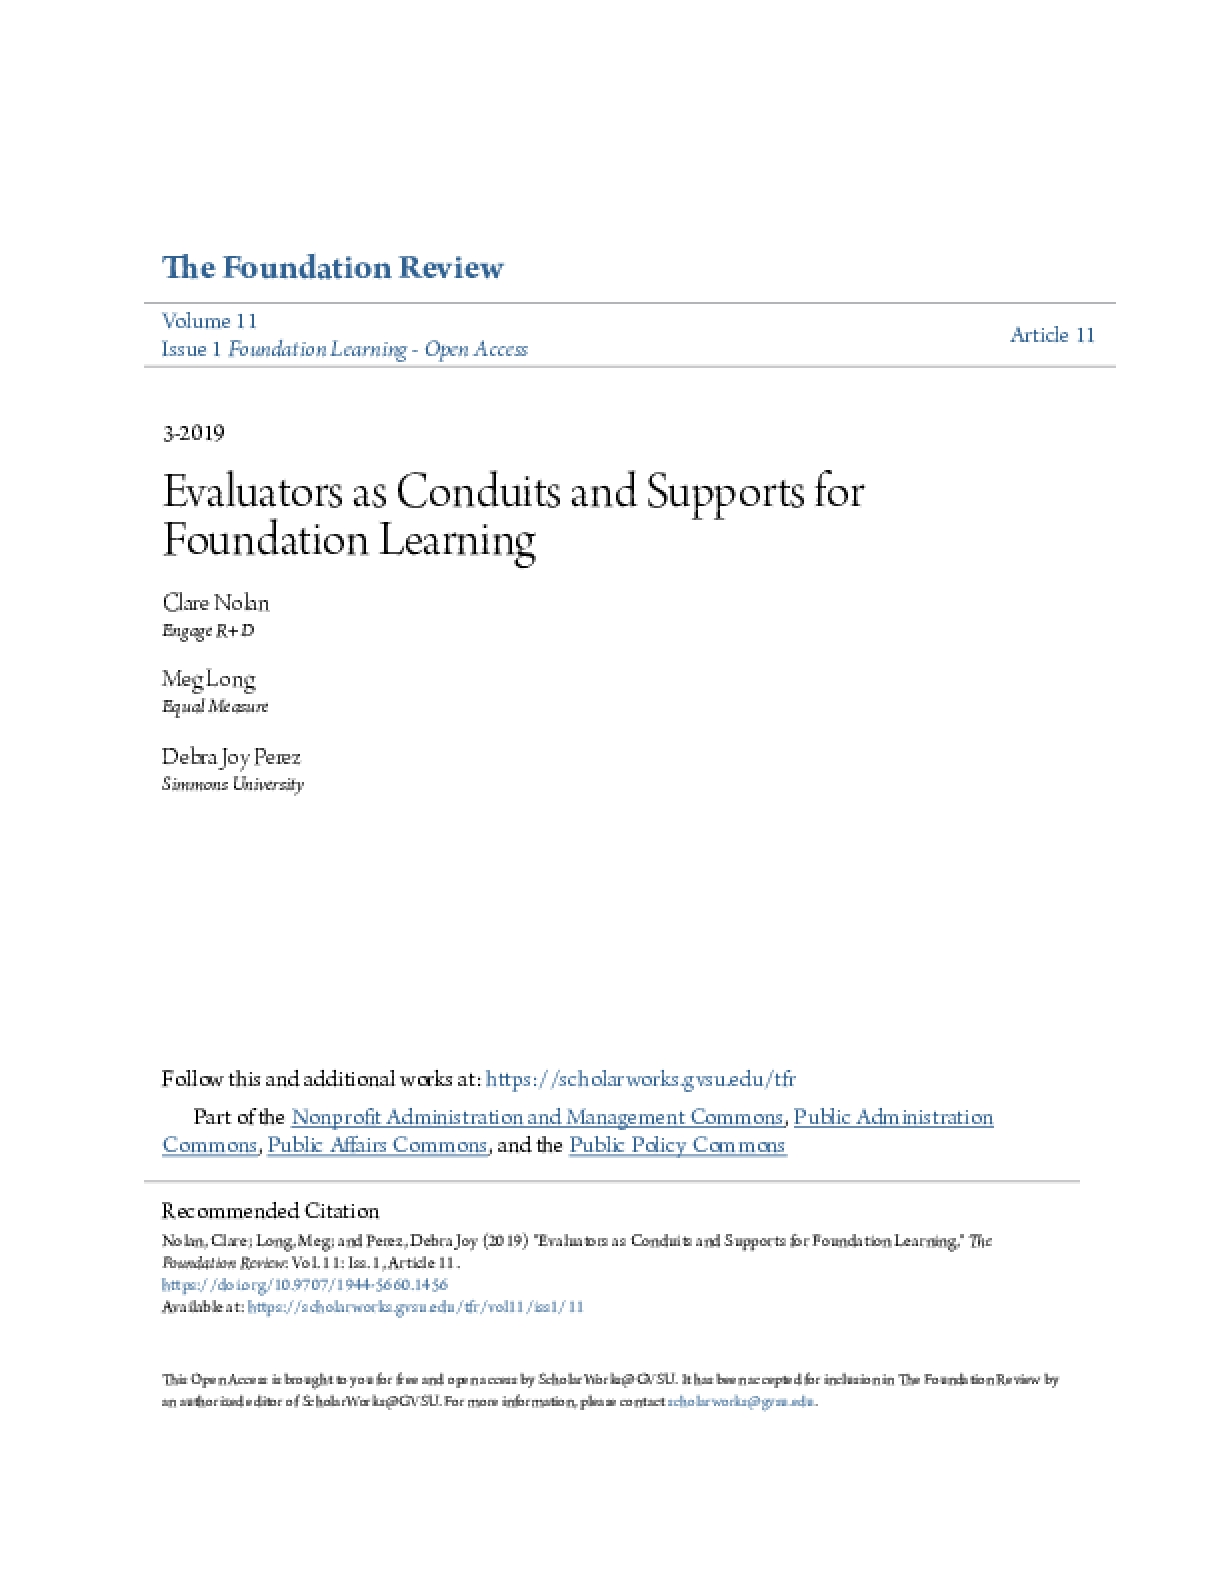 Evaluators as Conduits and Supports for Foundation Learning